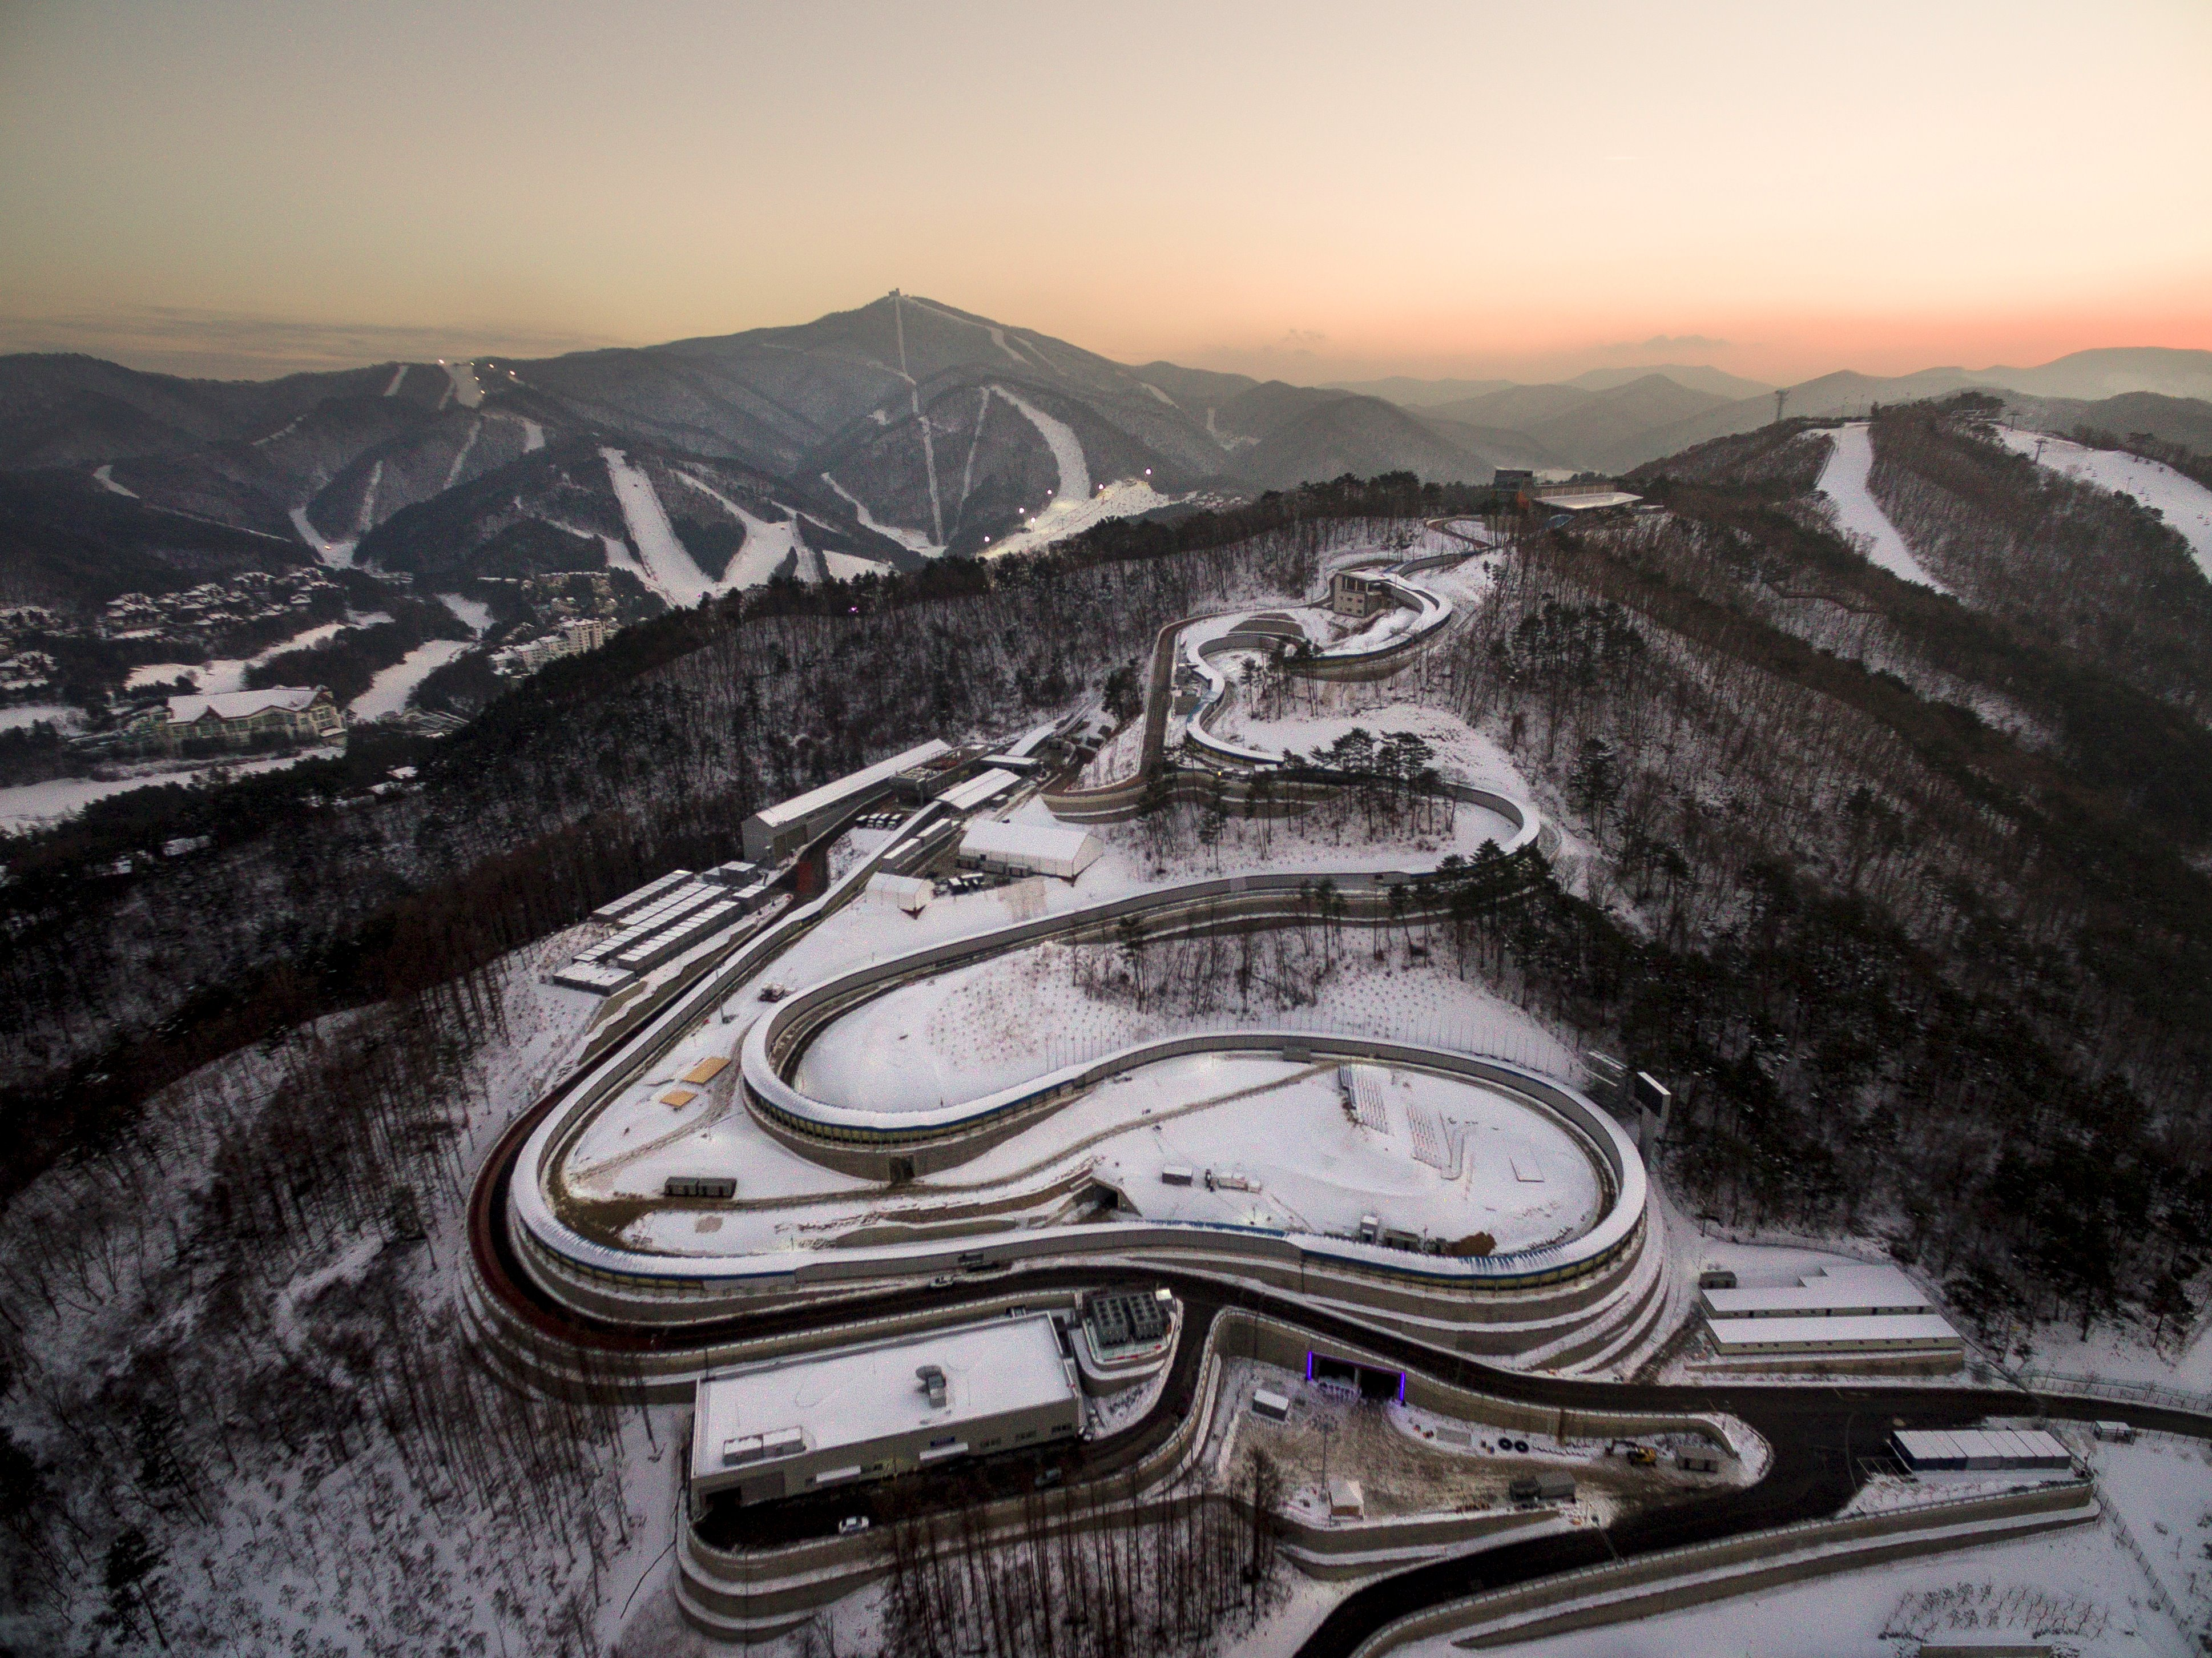 This picture taken on December 28, 2017 in PyeongChang shows the Olympic Sliding Centre, a venue for the 2018 PyeongChang Winter Olympics.